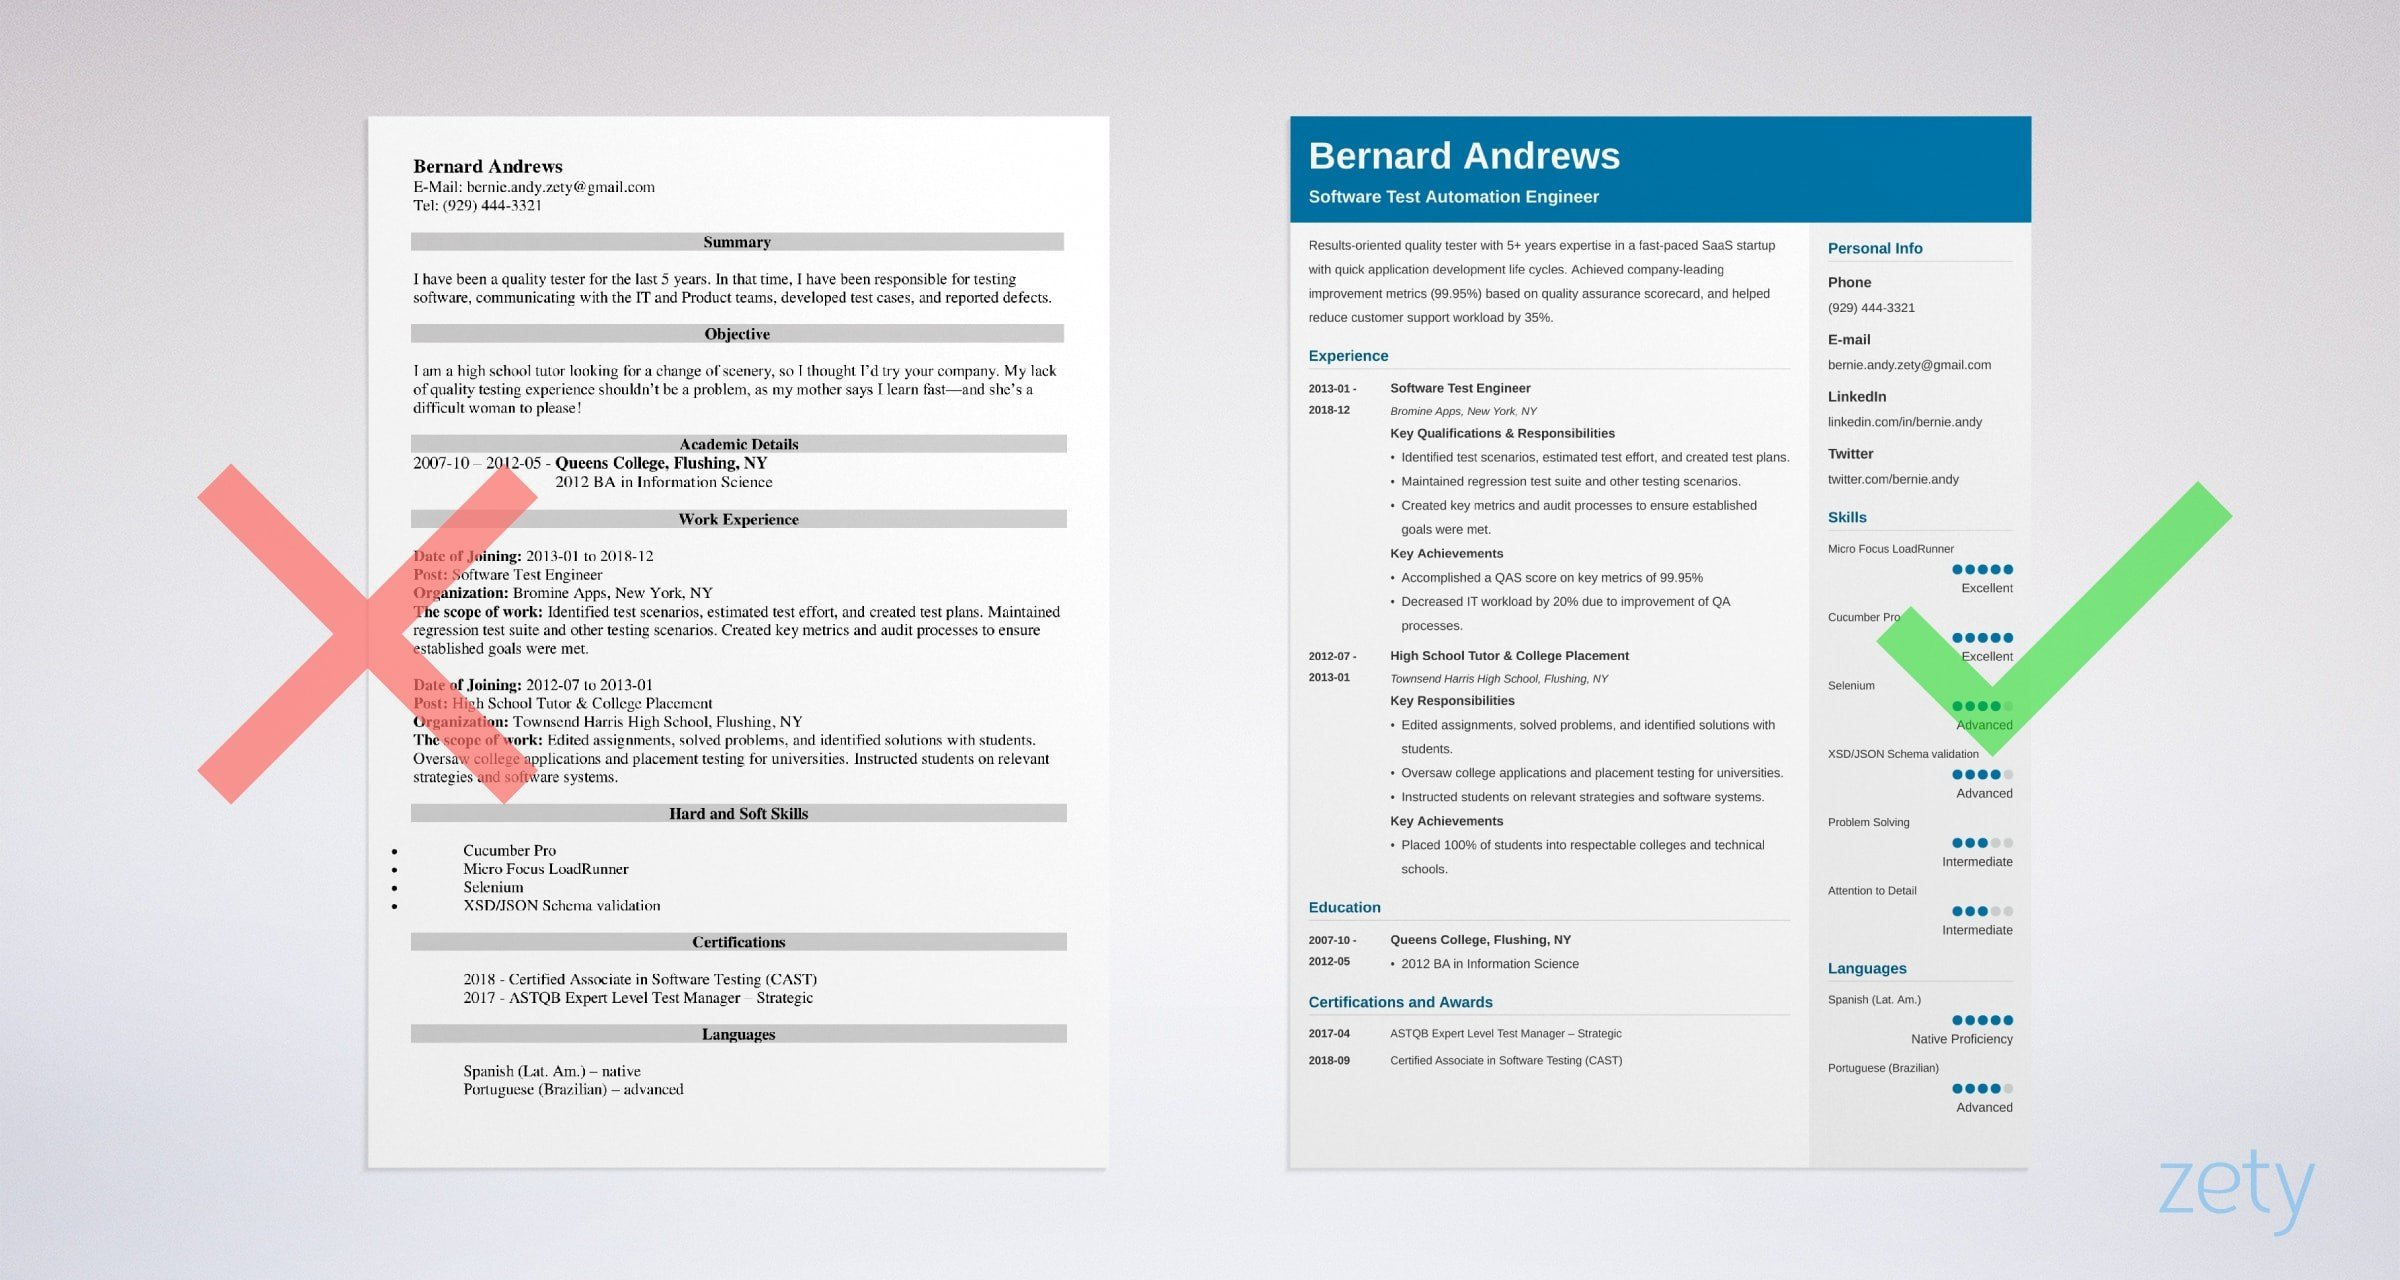 quality assurance qa resume samples guide examples software testing for year experience Resume Software Testing Resume For 3 Year Experience